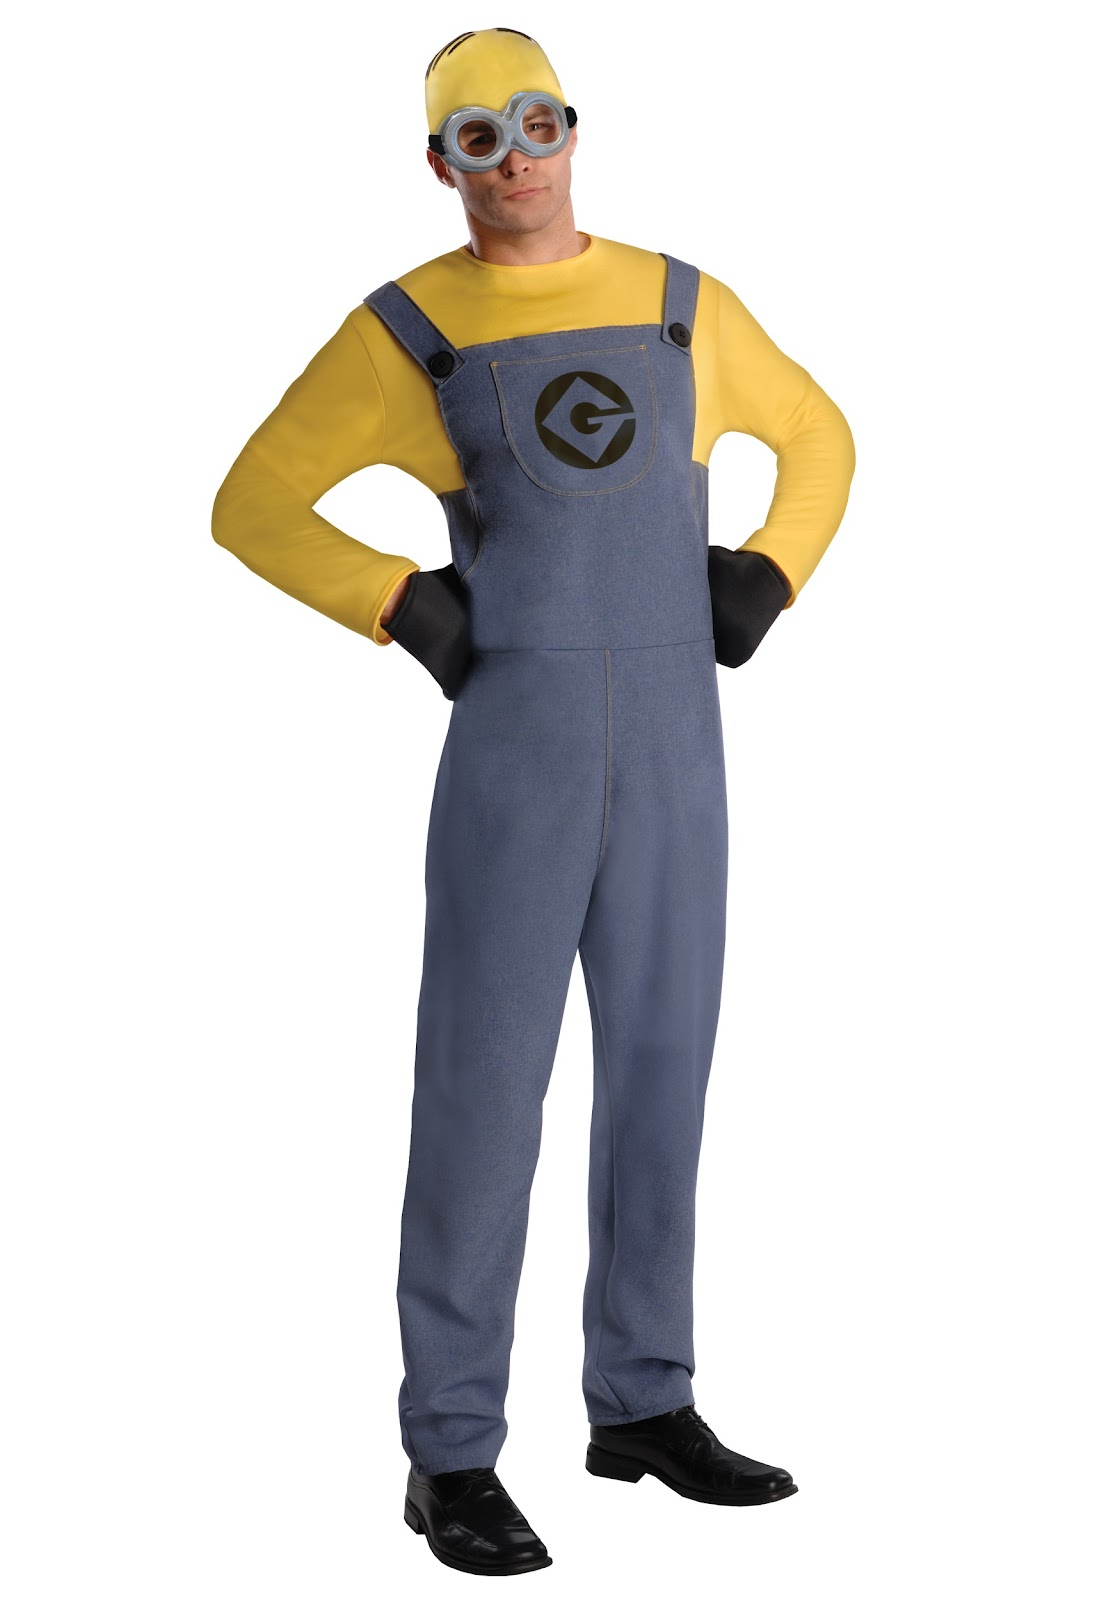 Image result for minion costumes